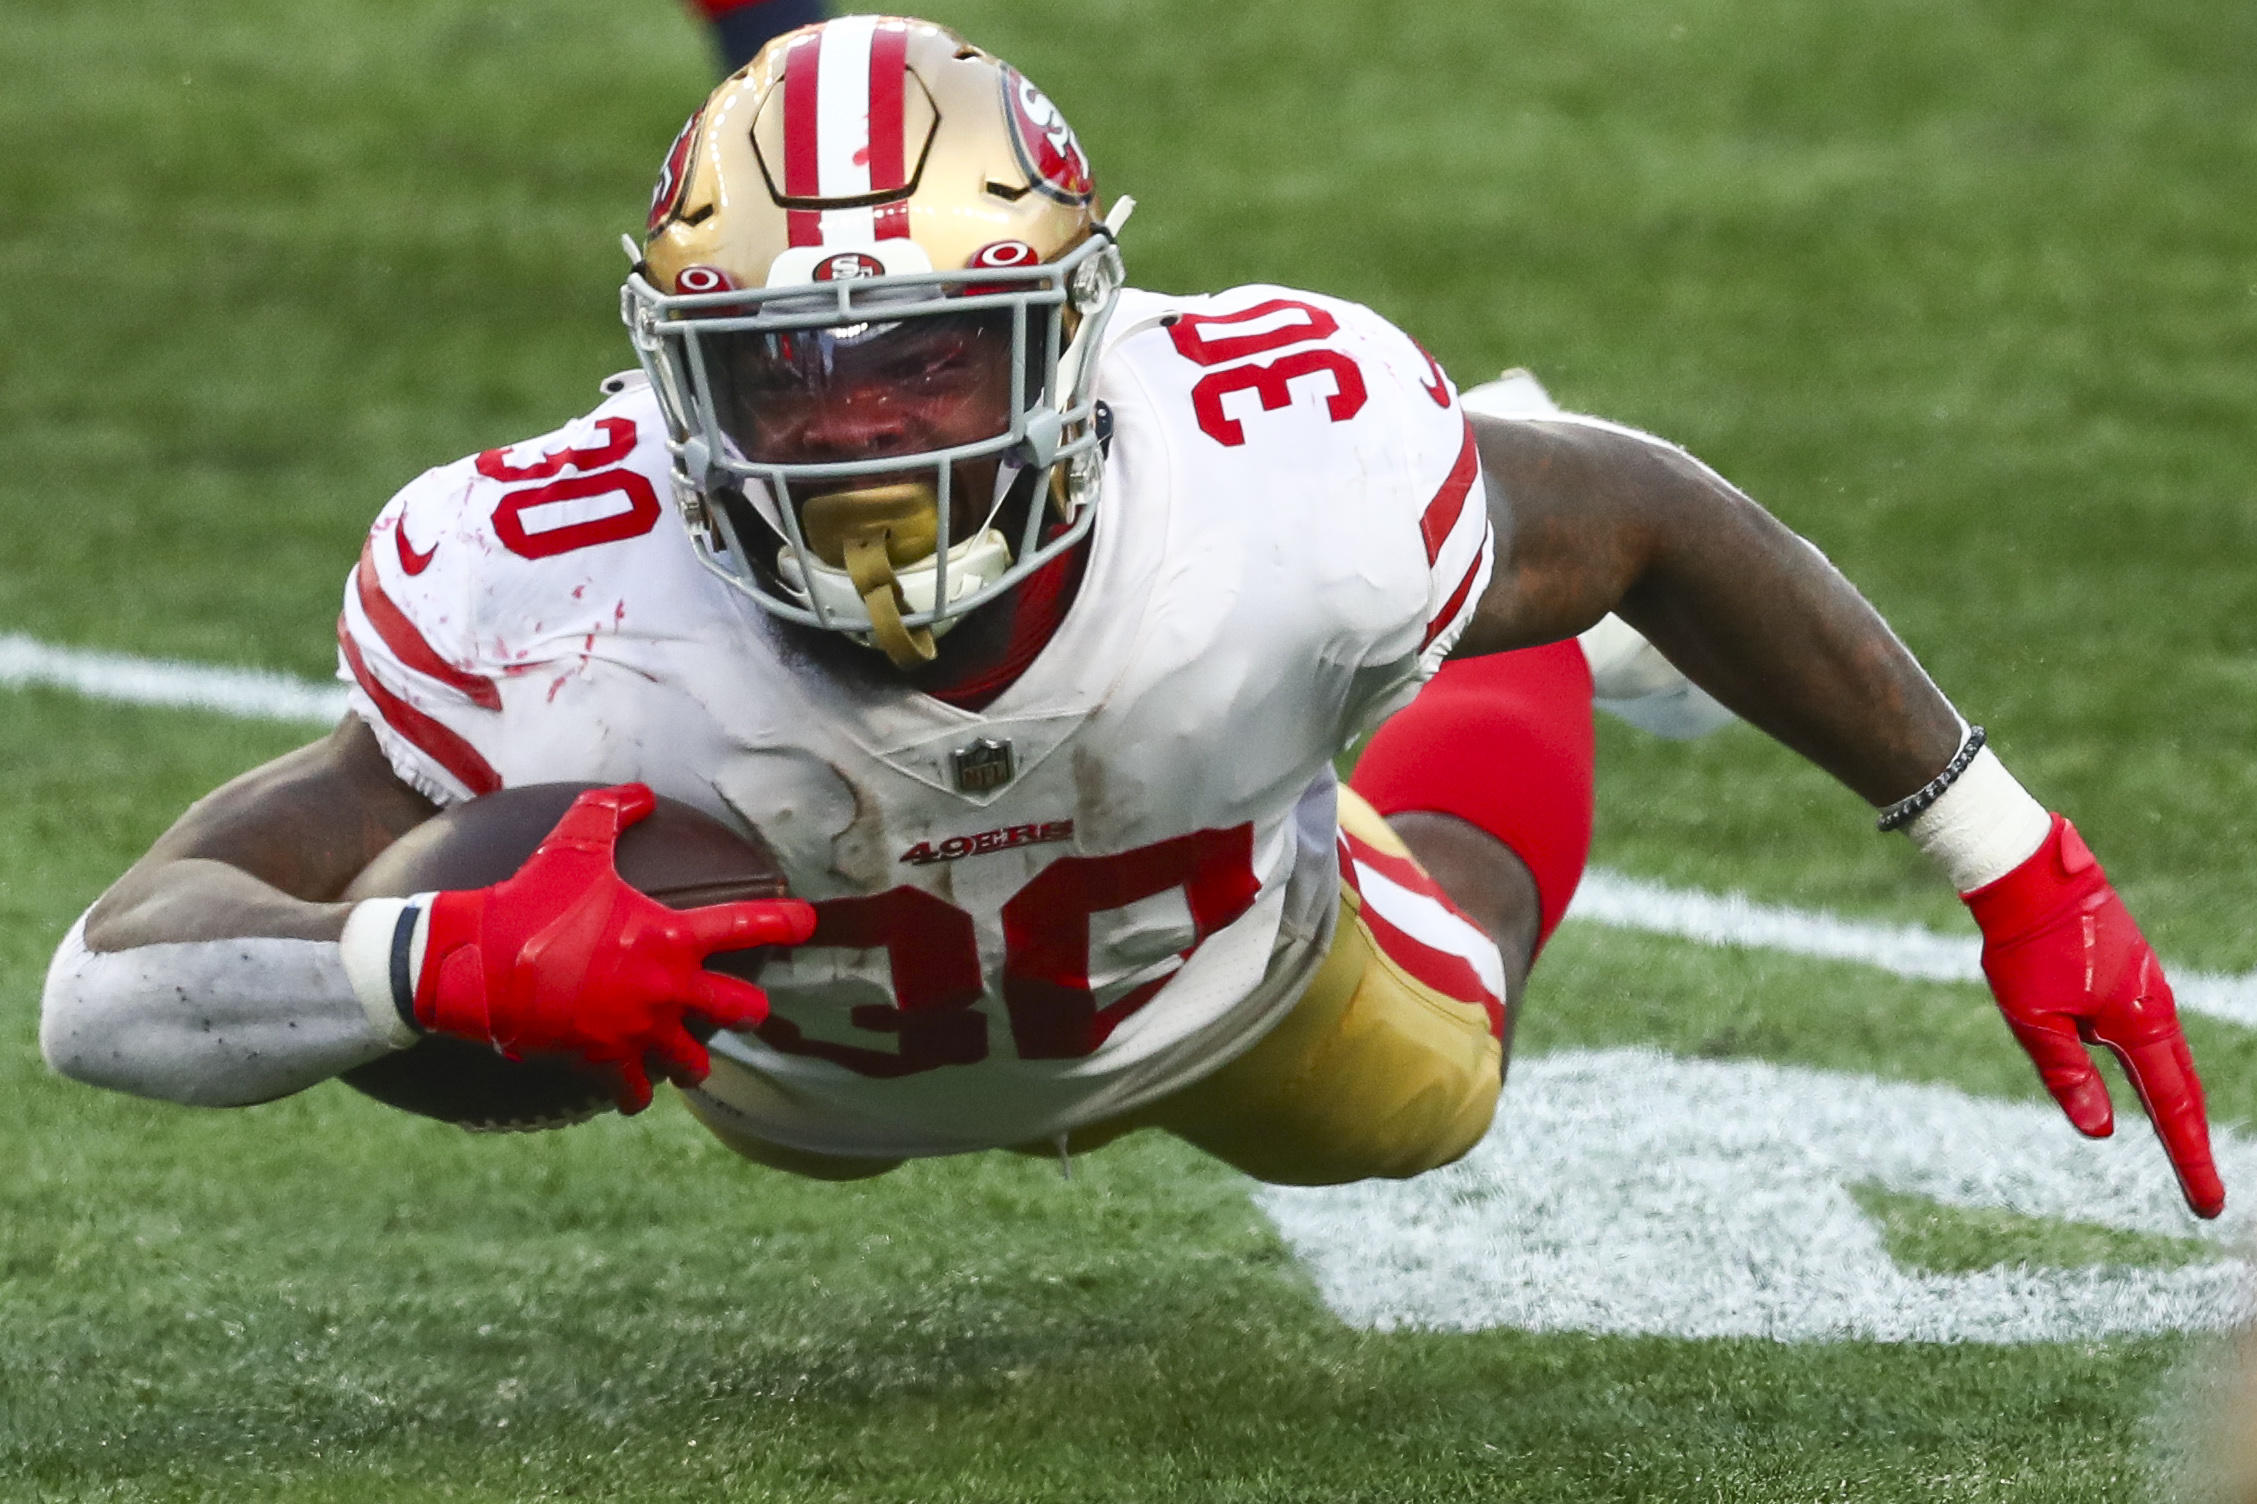 The San Francisco 49ers may be without young running back Jeff Wilson Jr. for the next few weeks because of an ankle injury.